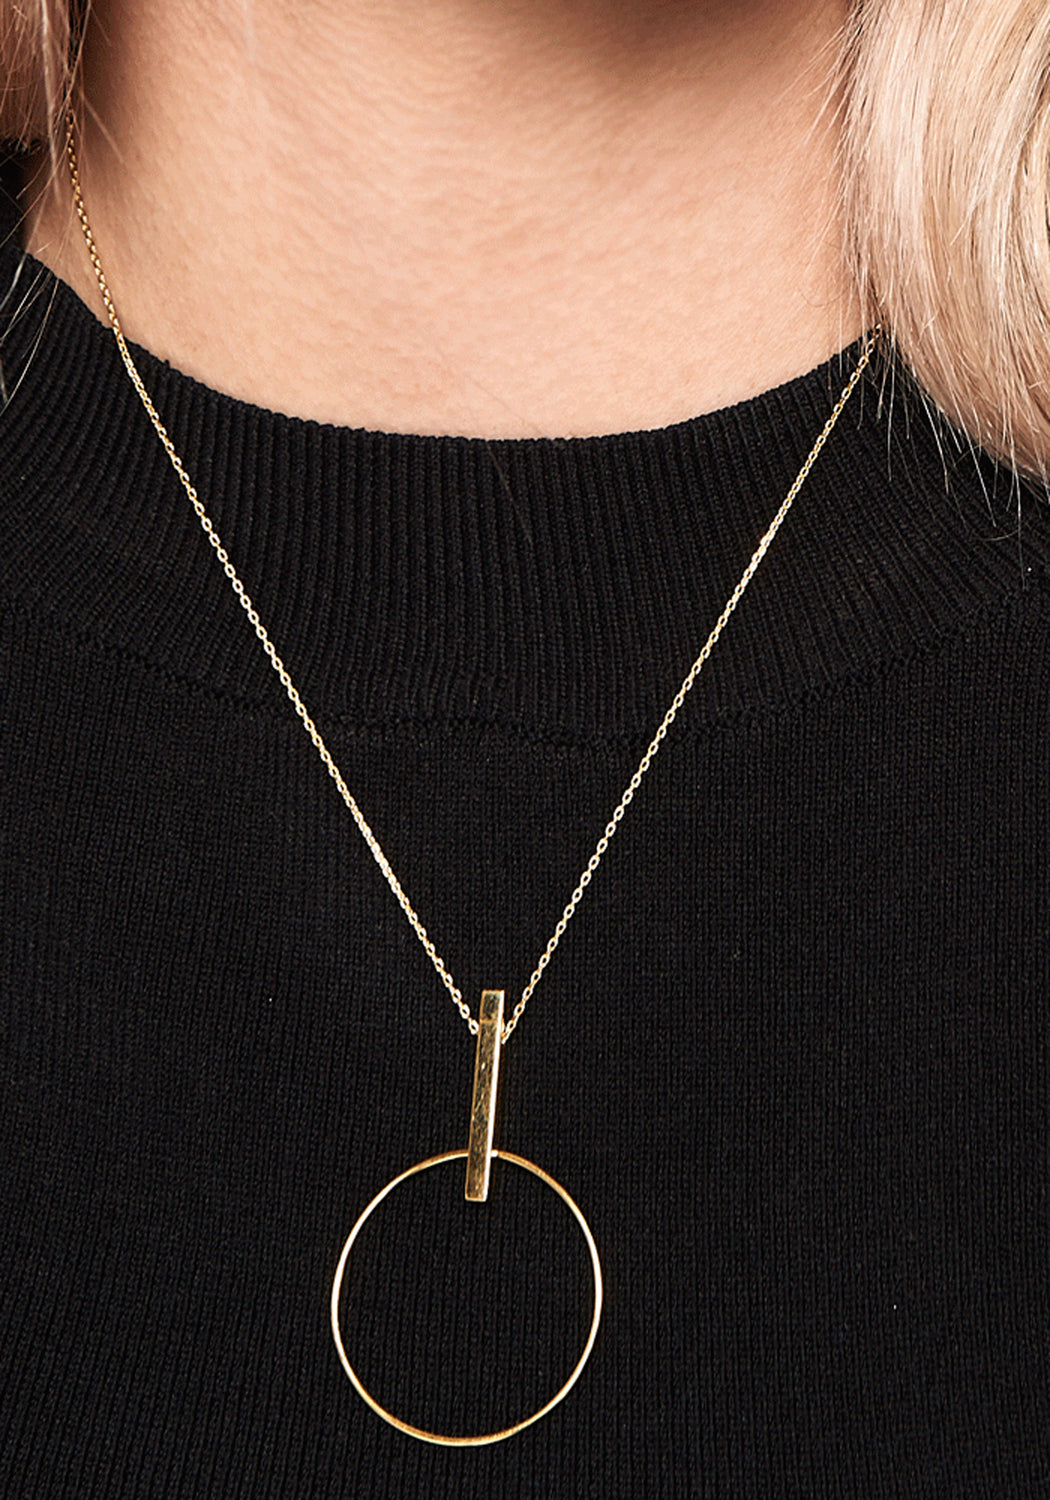 Studio Circle Pendant Necklace Gold